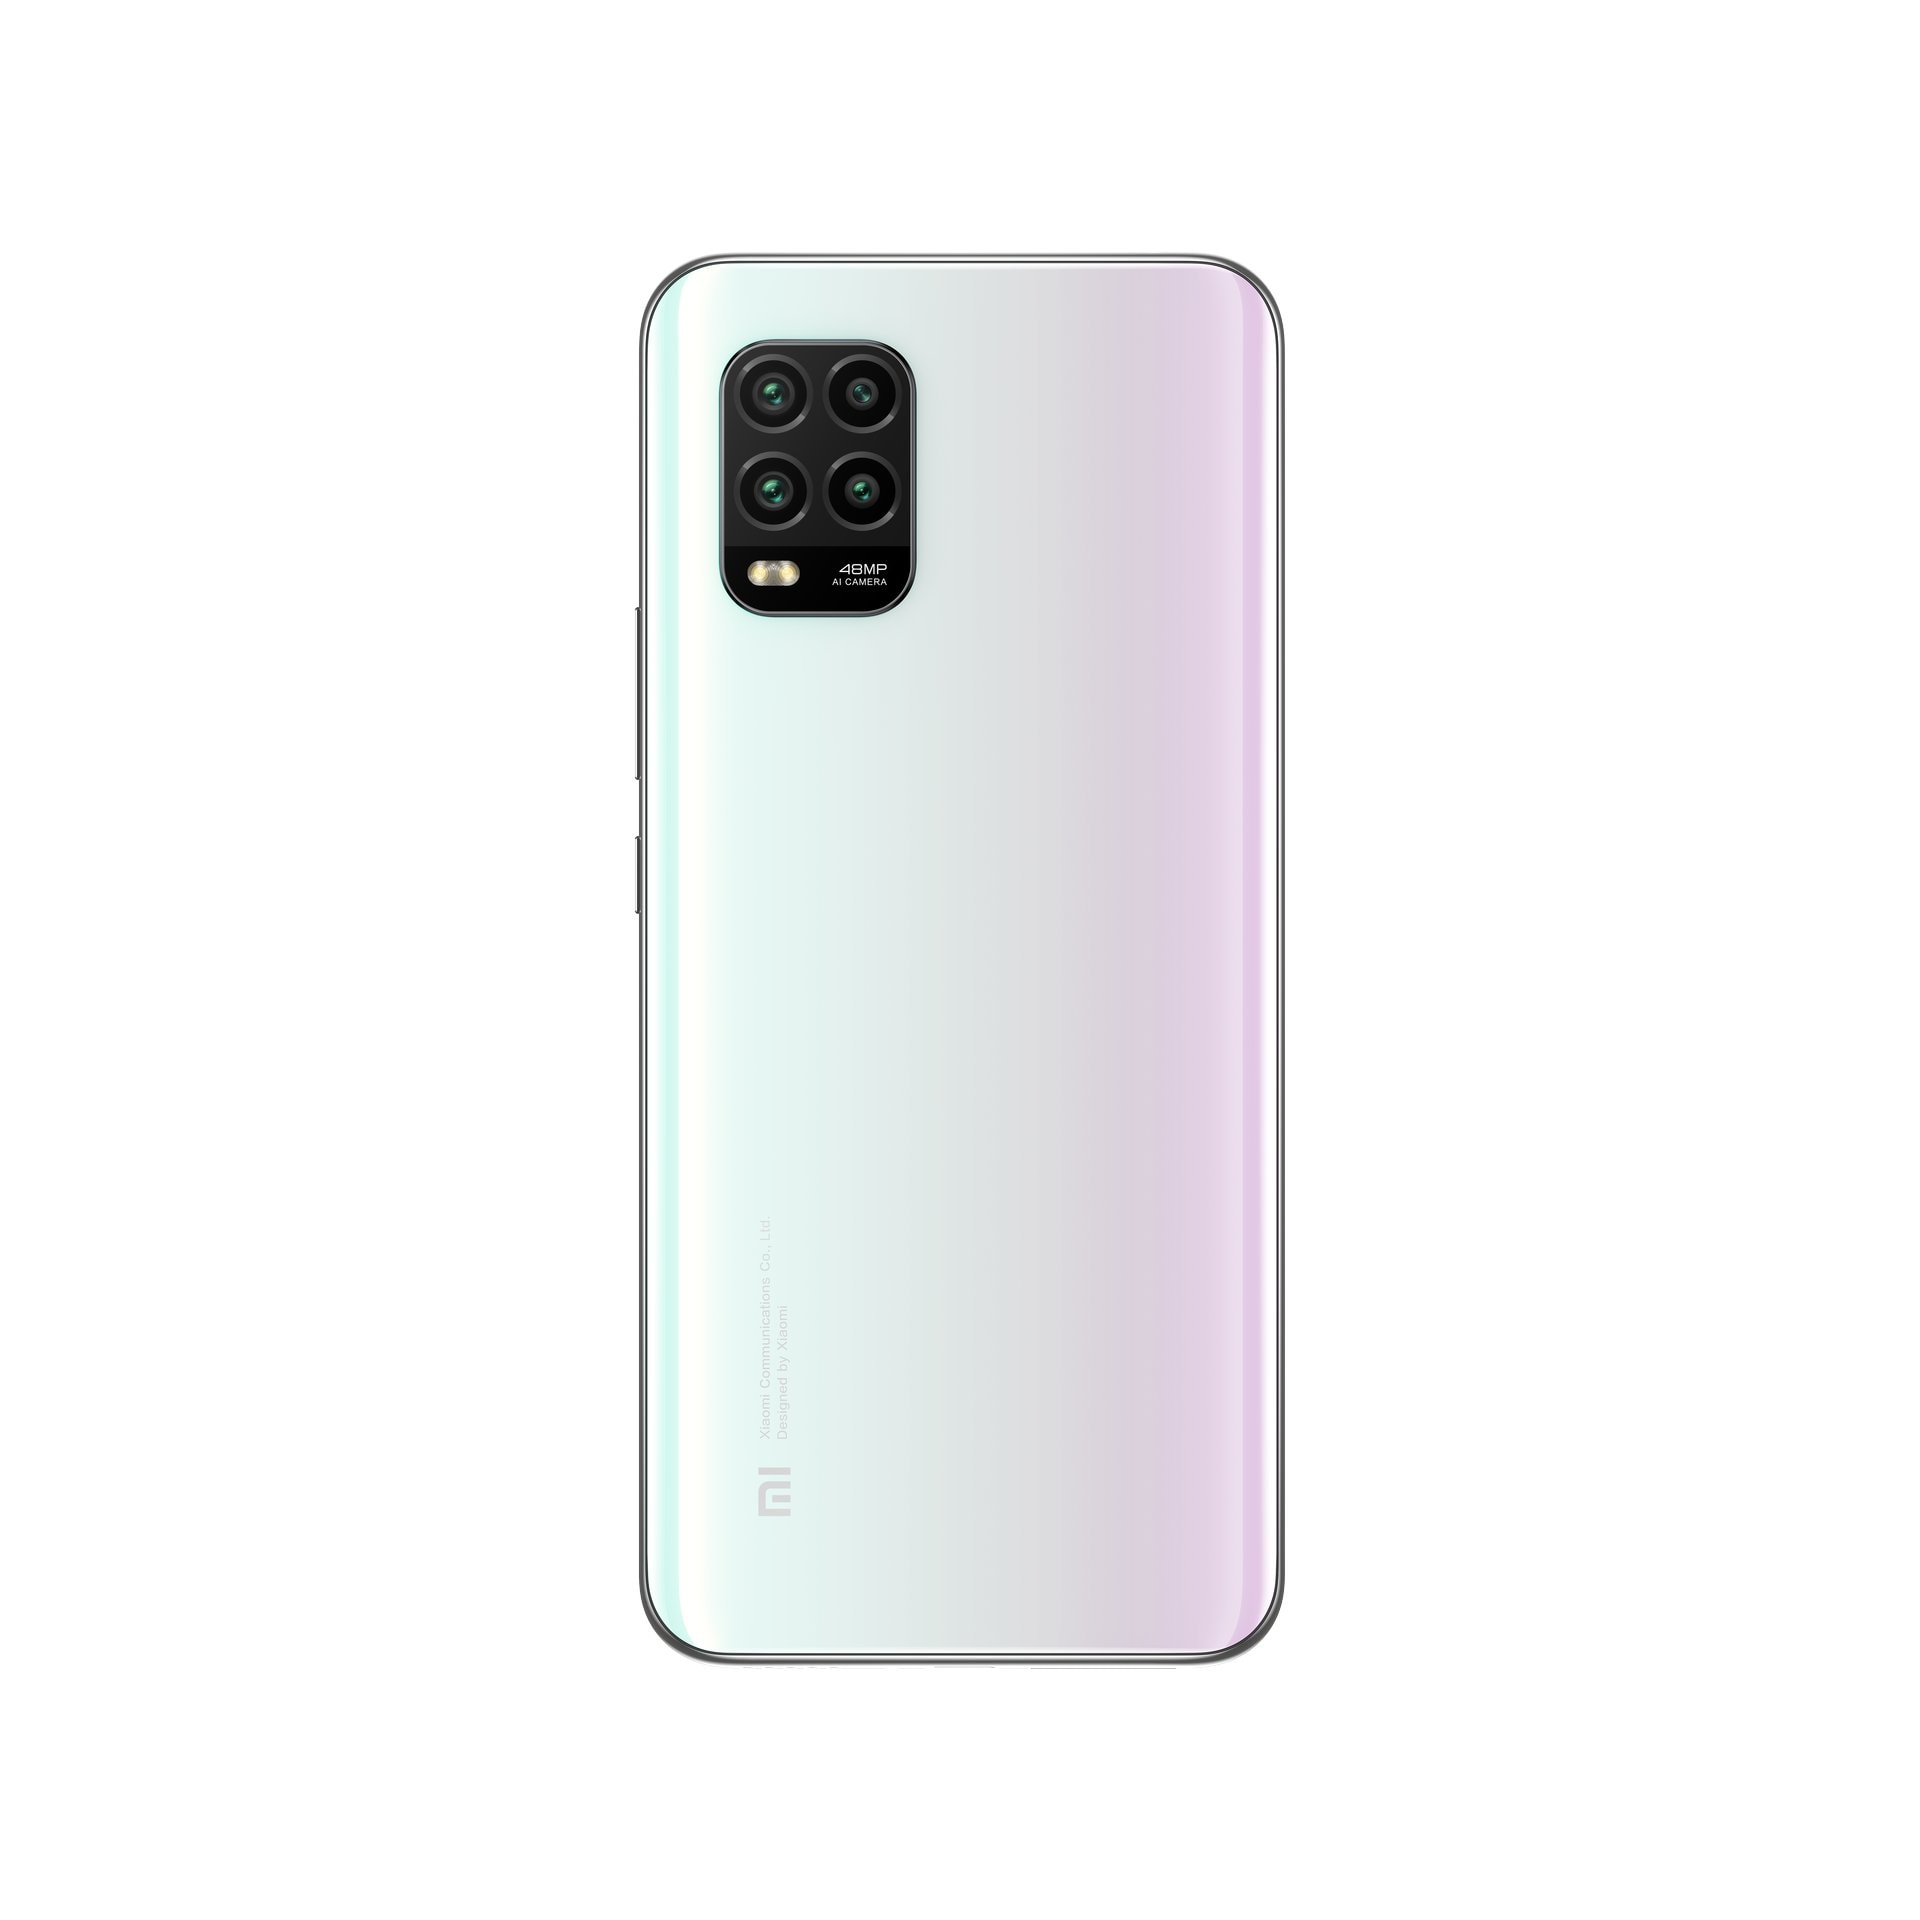 xiaomi mi 10 lite 5g press render (3)